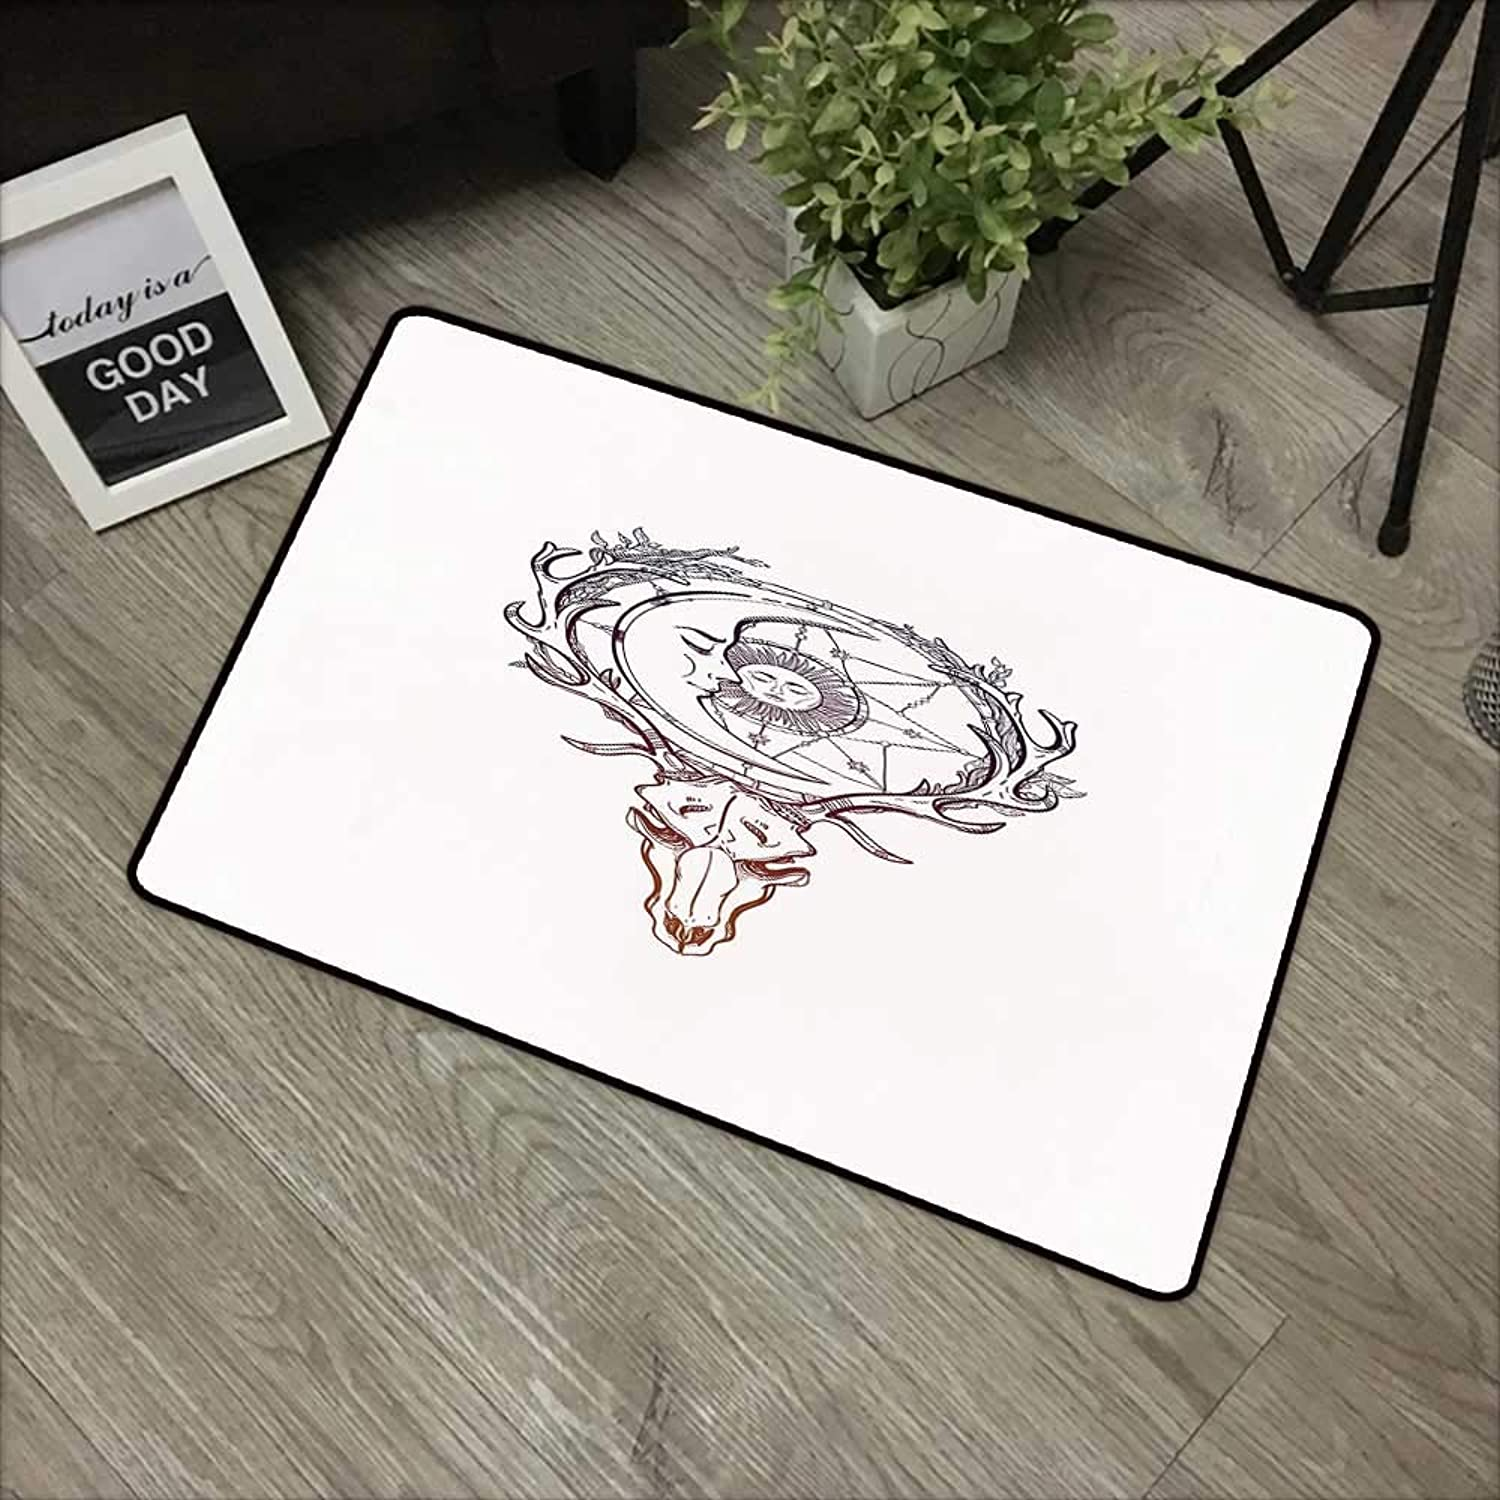 Printed door mat W35 x L59 INCH Sun,Tattoo Style Animal Skull with Celestial Star Shape Antlers Doodle,Dark Purple Cinnamon White Natural dye printing to predect your baby's skin Non-slip Door Mat Car